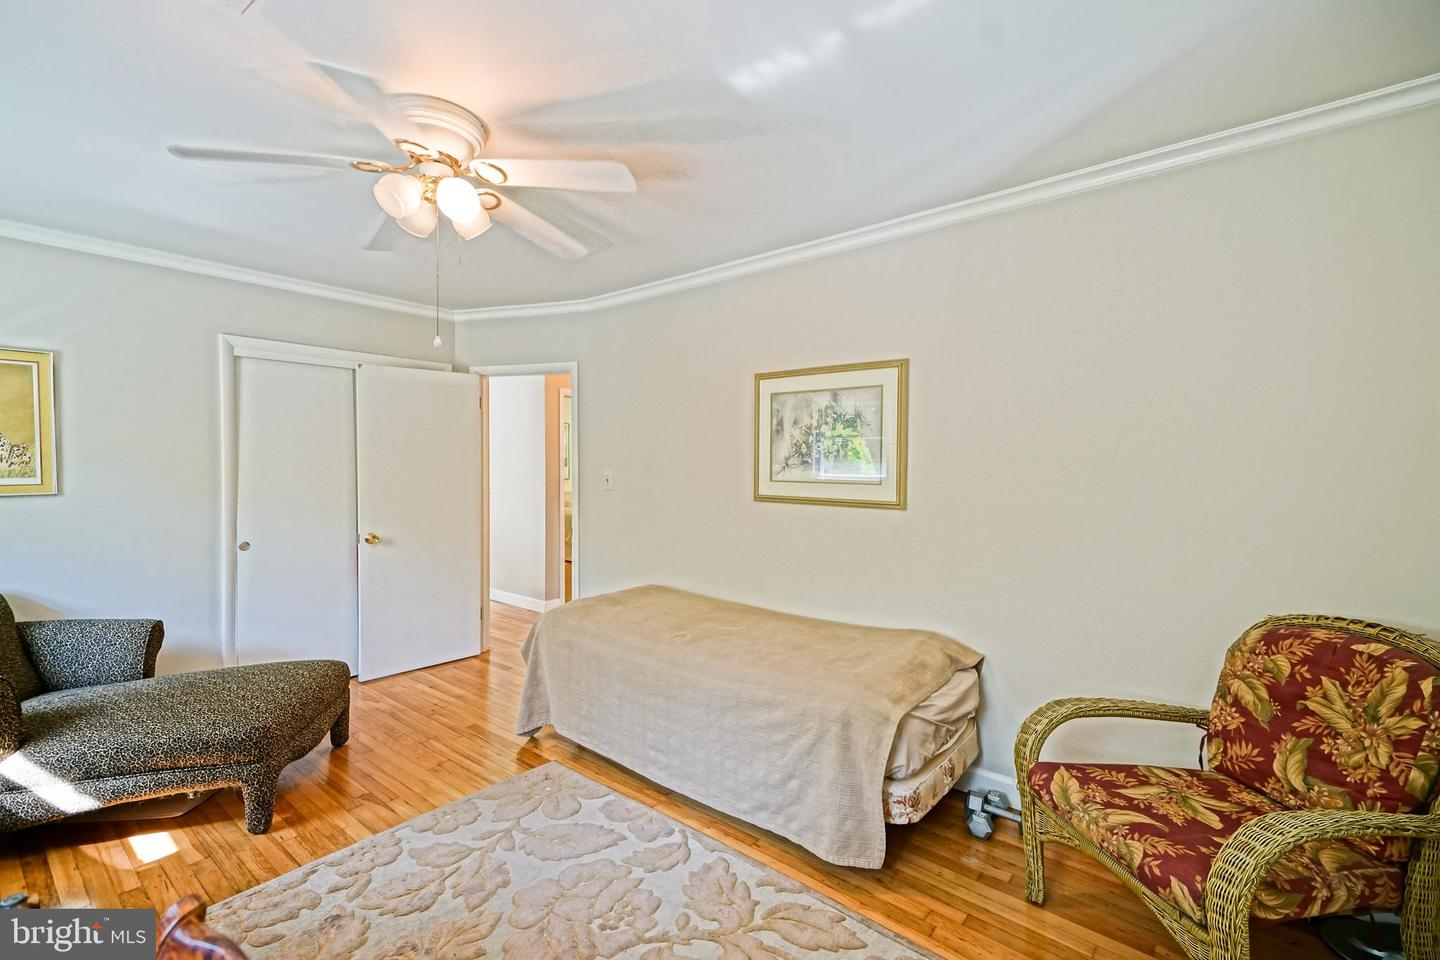 DESU147248-302005856078-2019-08-30-15-41-29 100 Bradley Ln | Lewes, DE Real Estate For Sale | MLS# Desu147248  - Jack Lingo REALTOR